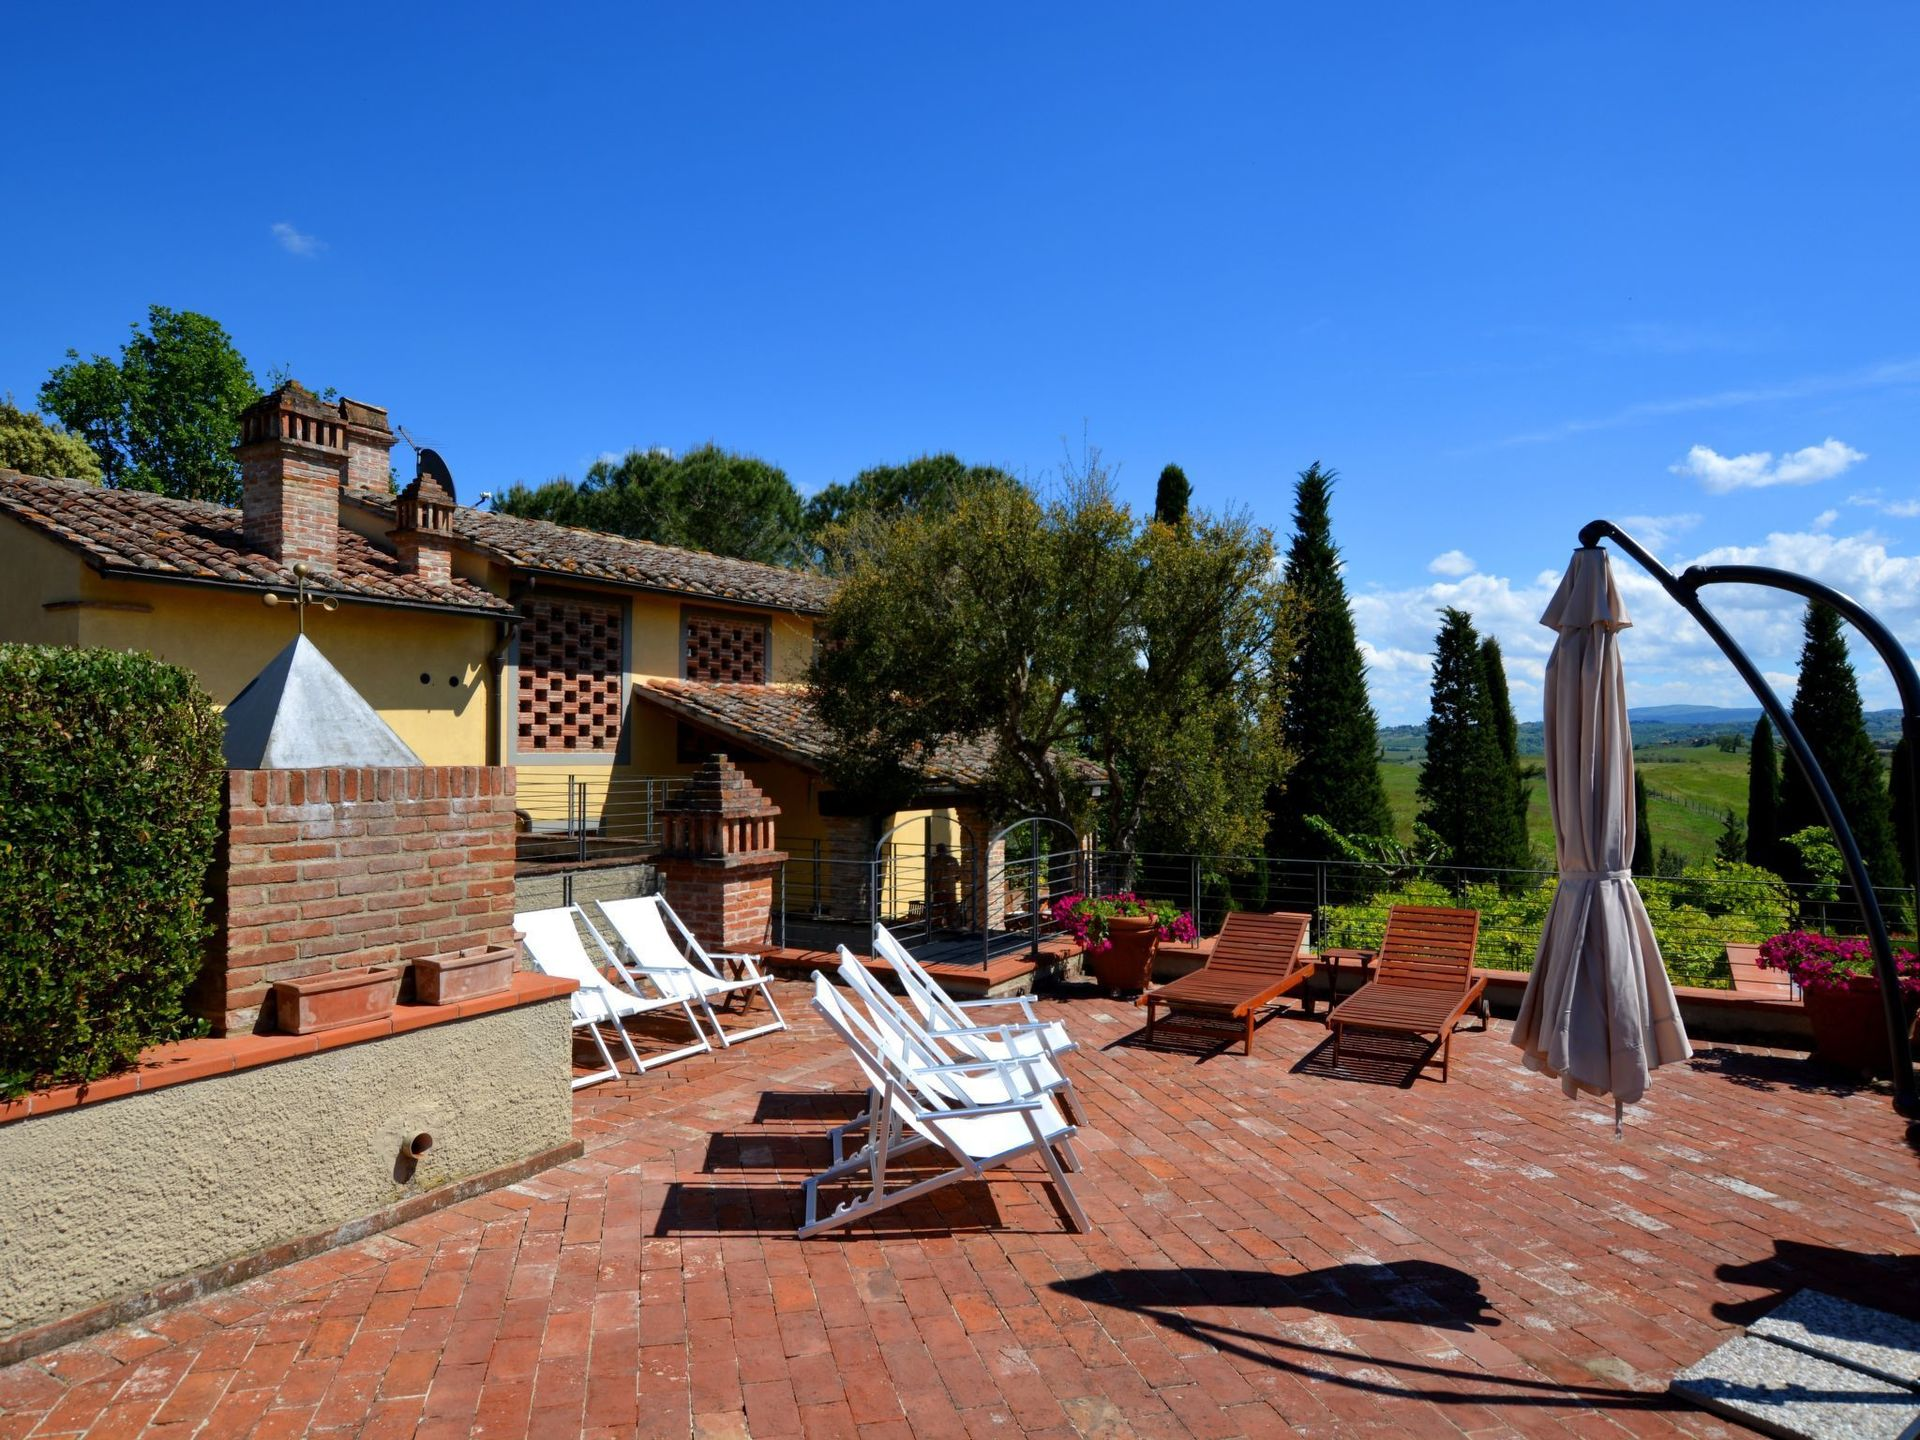 Beauty At Home Castelfiorentino tassinaia: villa that sleeps 10 people in 4 bedrooms, located